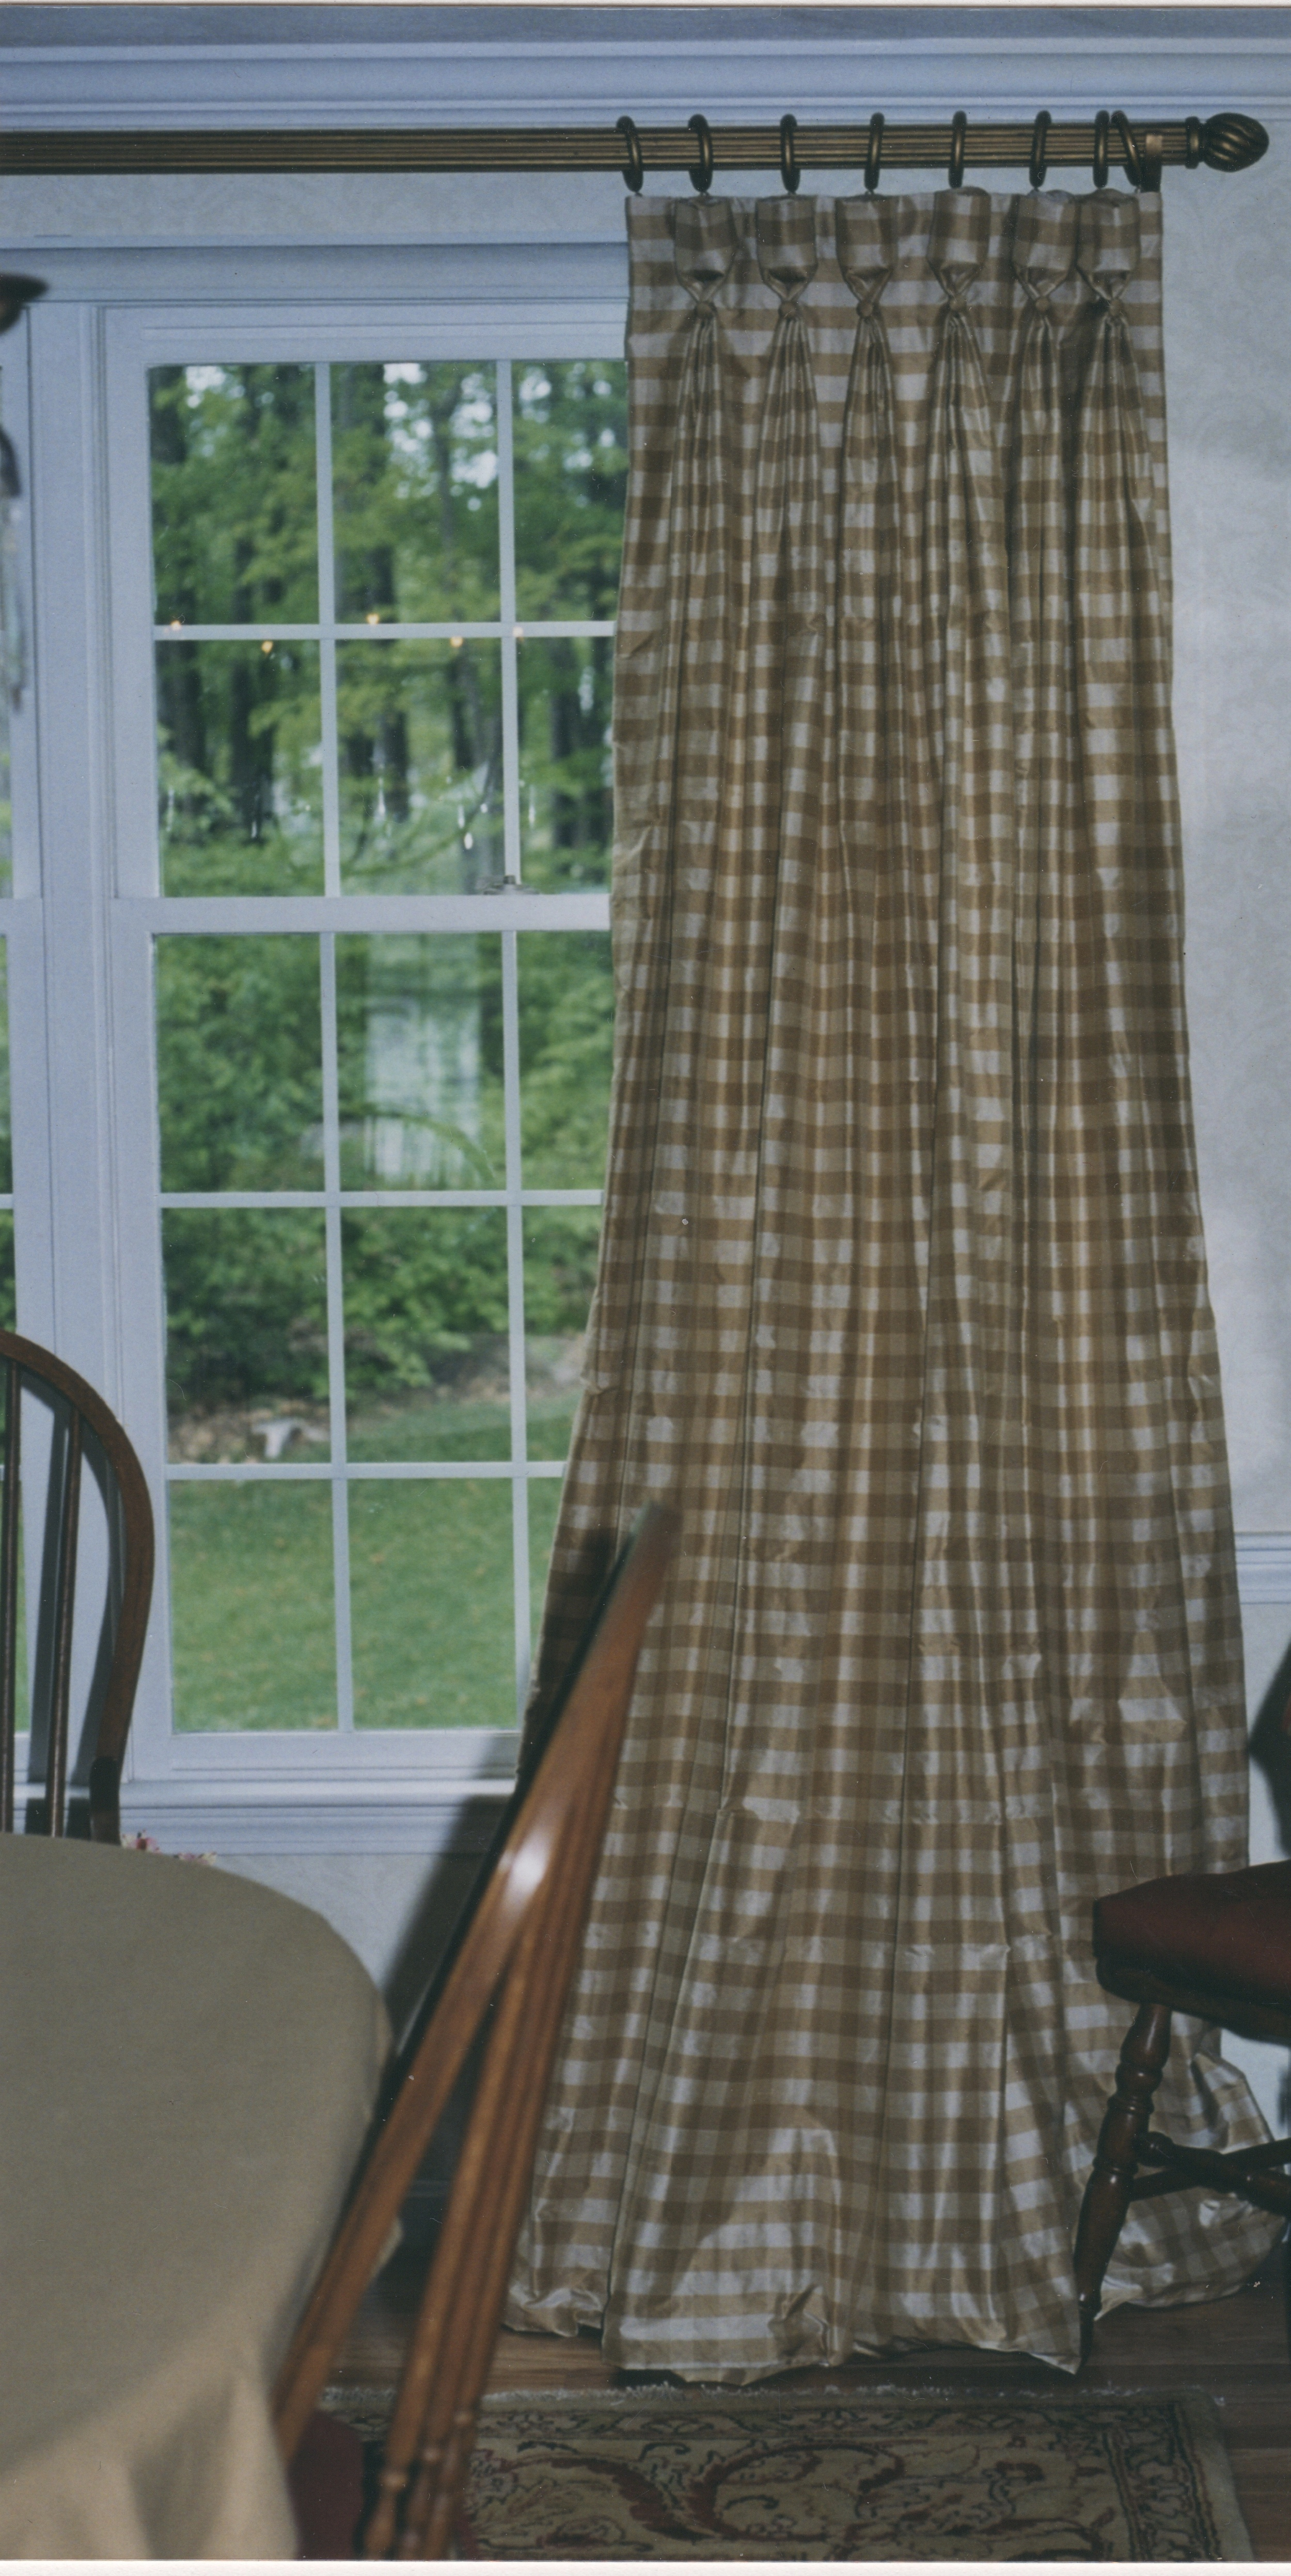 Casual Elegance is certainly stated with this gold checked silk. Silk catches the light and catches our attention. Silk frames the view for this family.